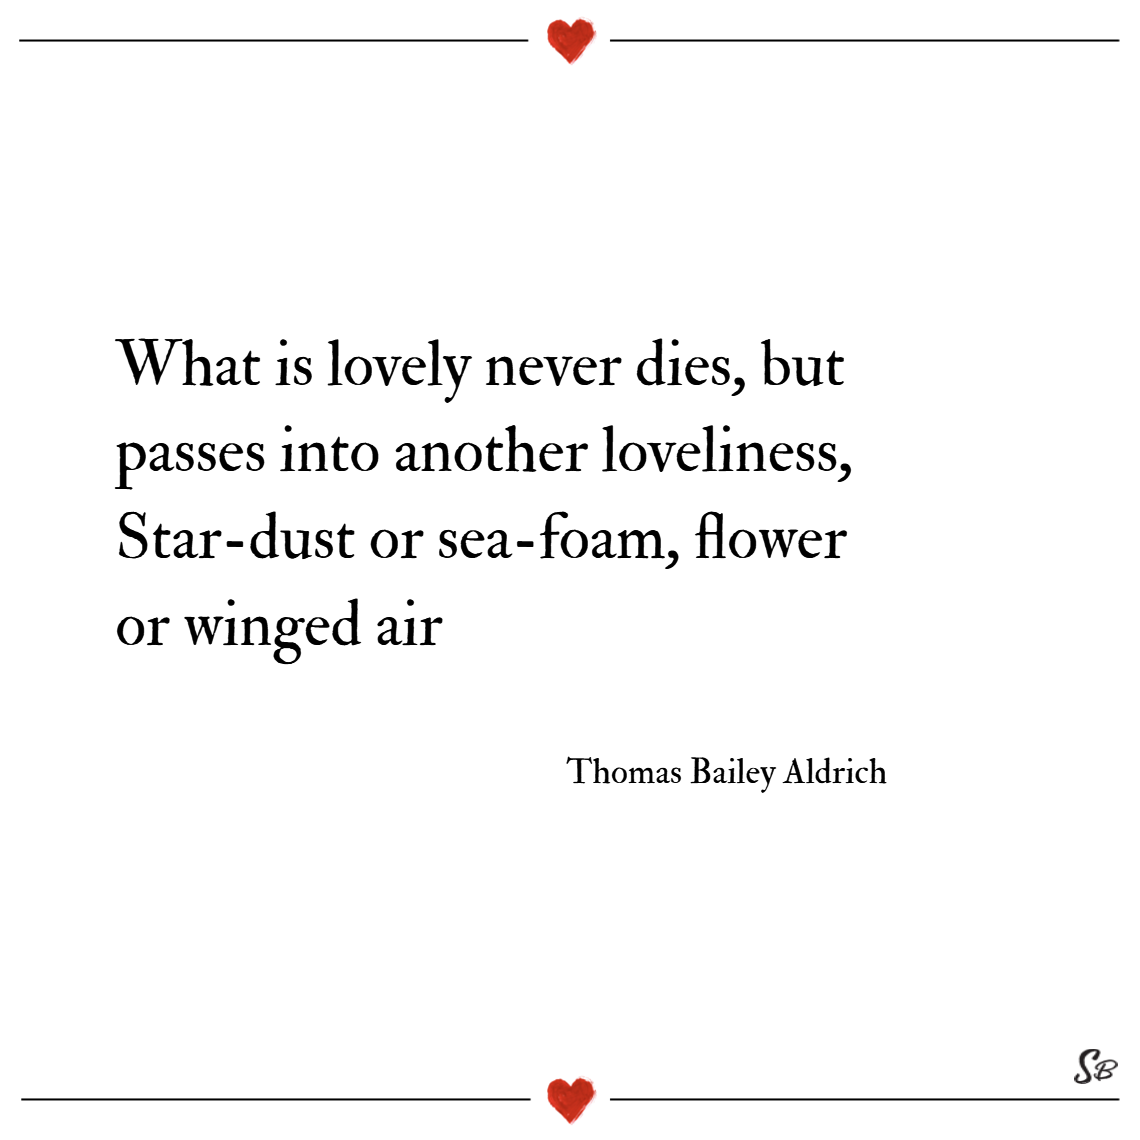 What is lovely never dies, but passes into another loveliness, star dust or sea foam, flower or winged air. – thomas bailey aldrich